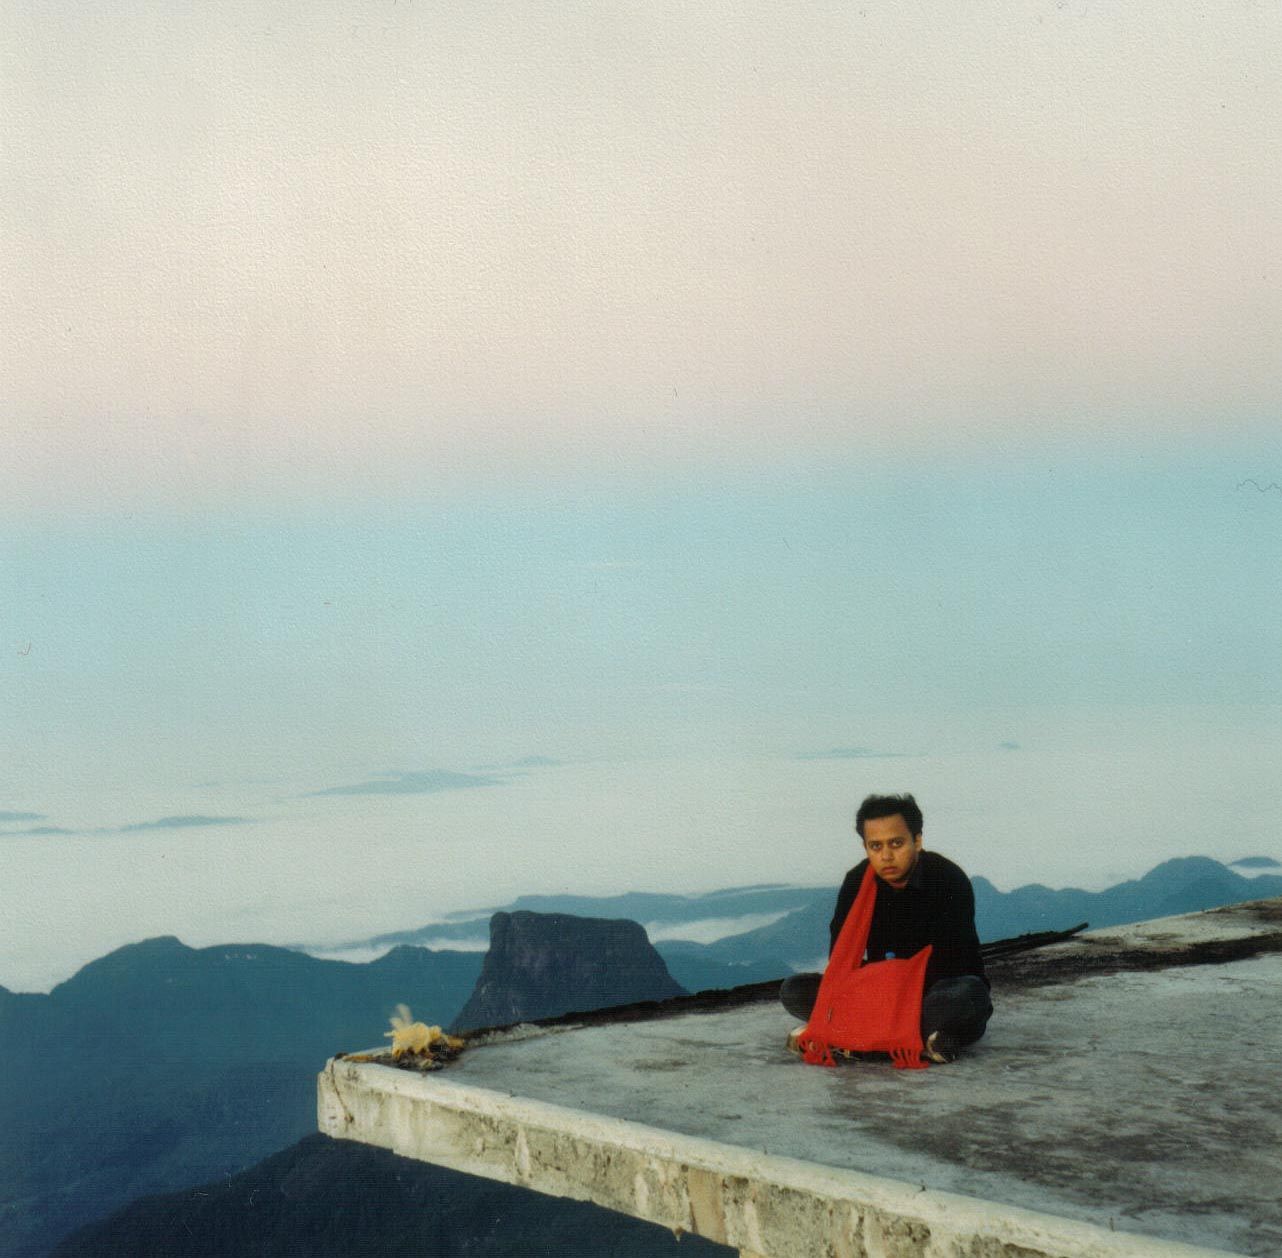 pilgrim - Adams Peak.jpg